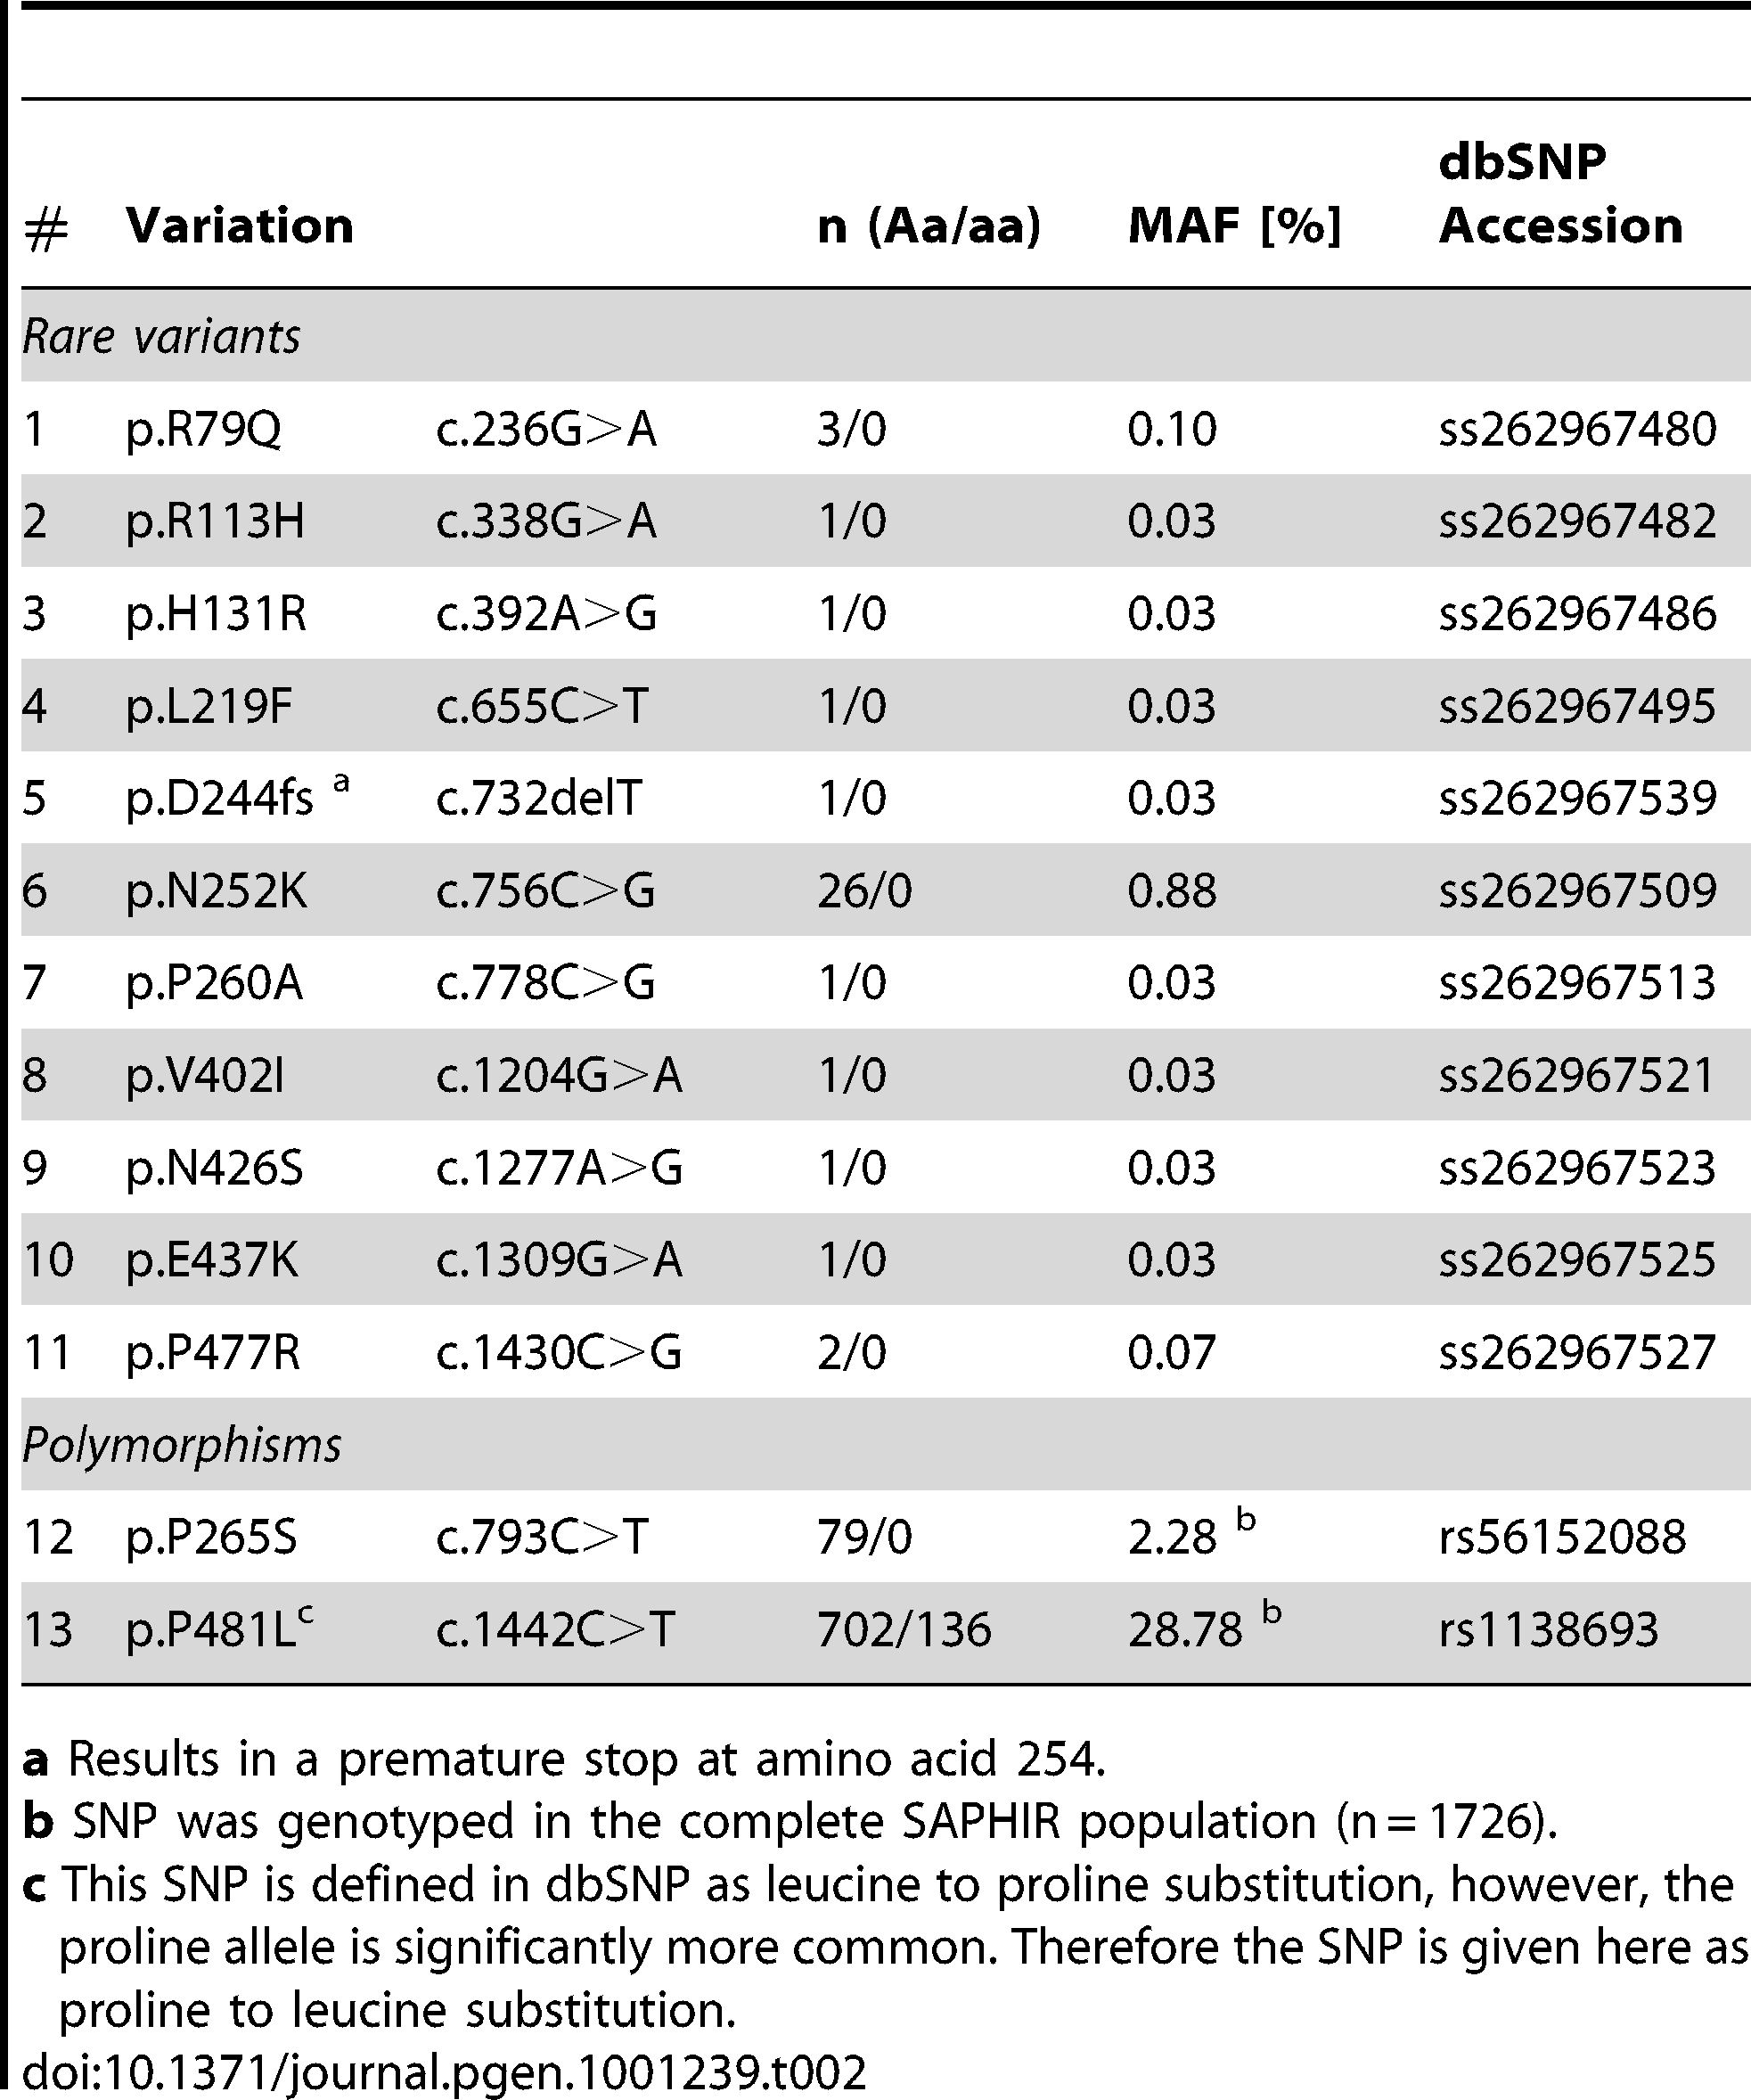 Non-synonymous variants found in 1,473 individuals of the SAPHIR study.